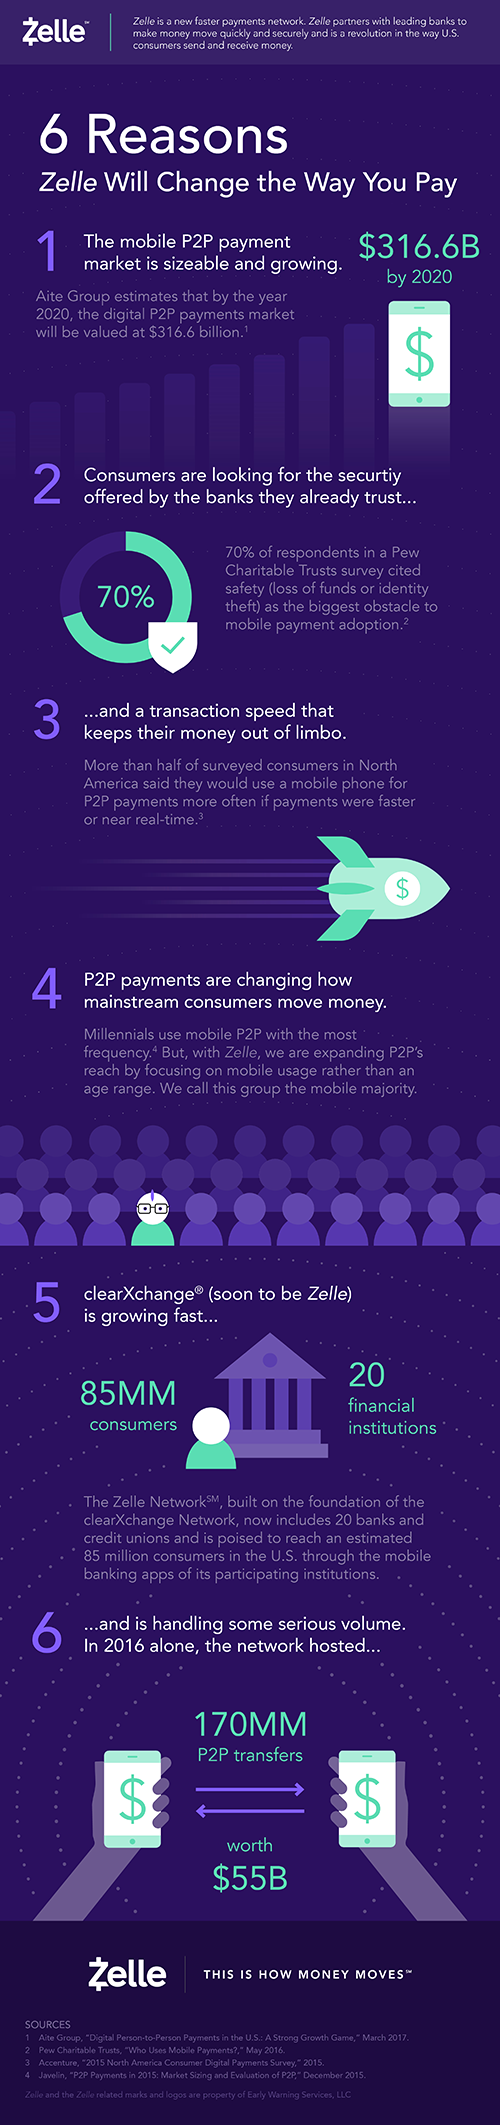 Zelle changing the way you pay